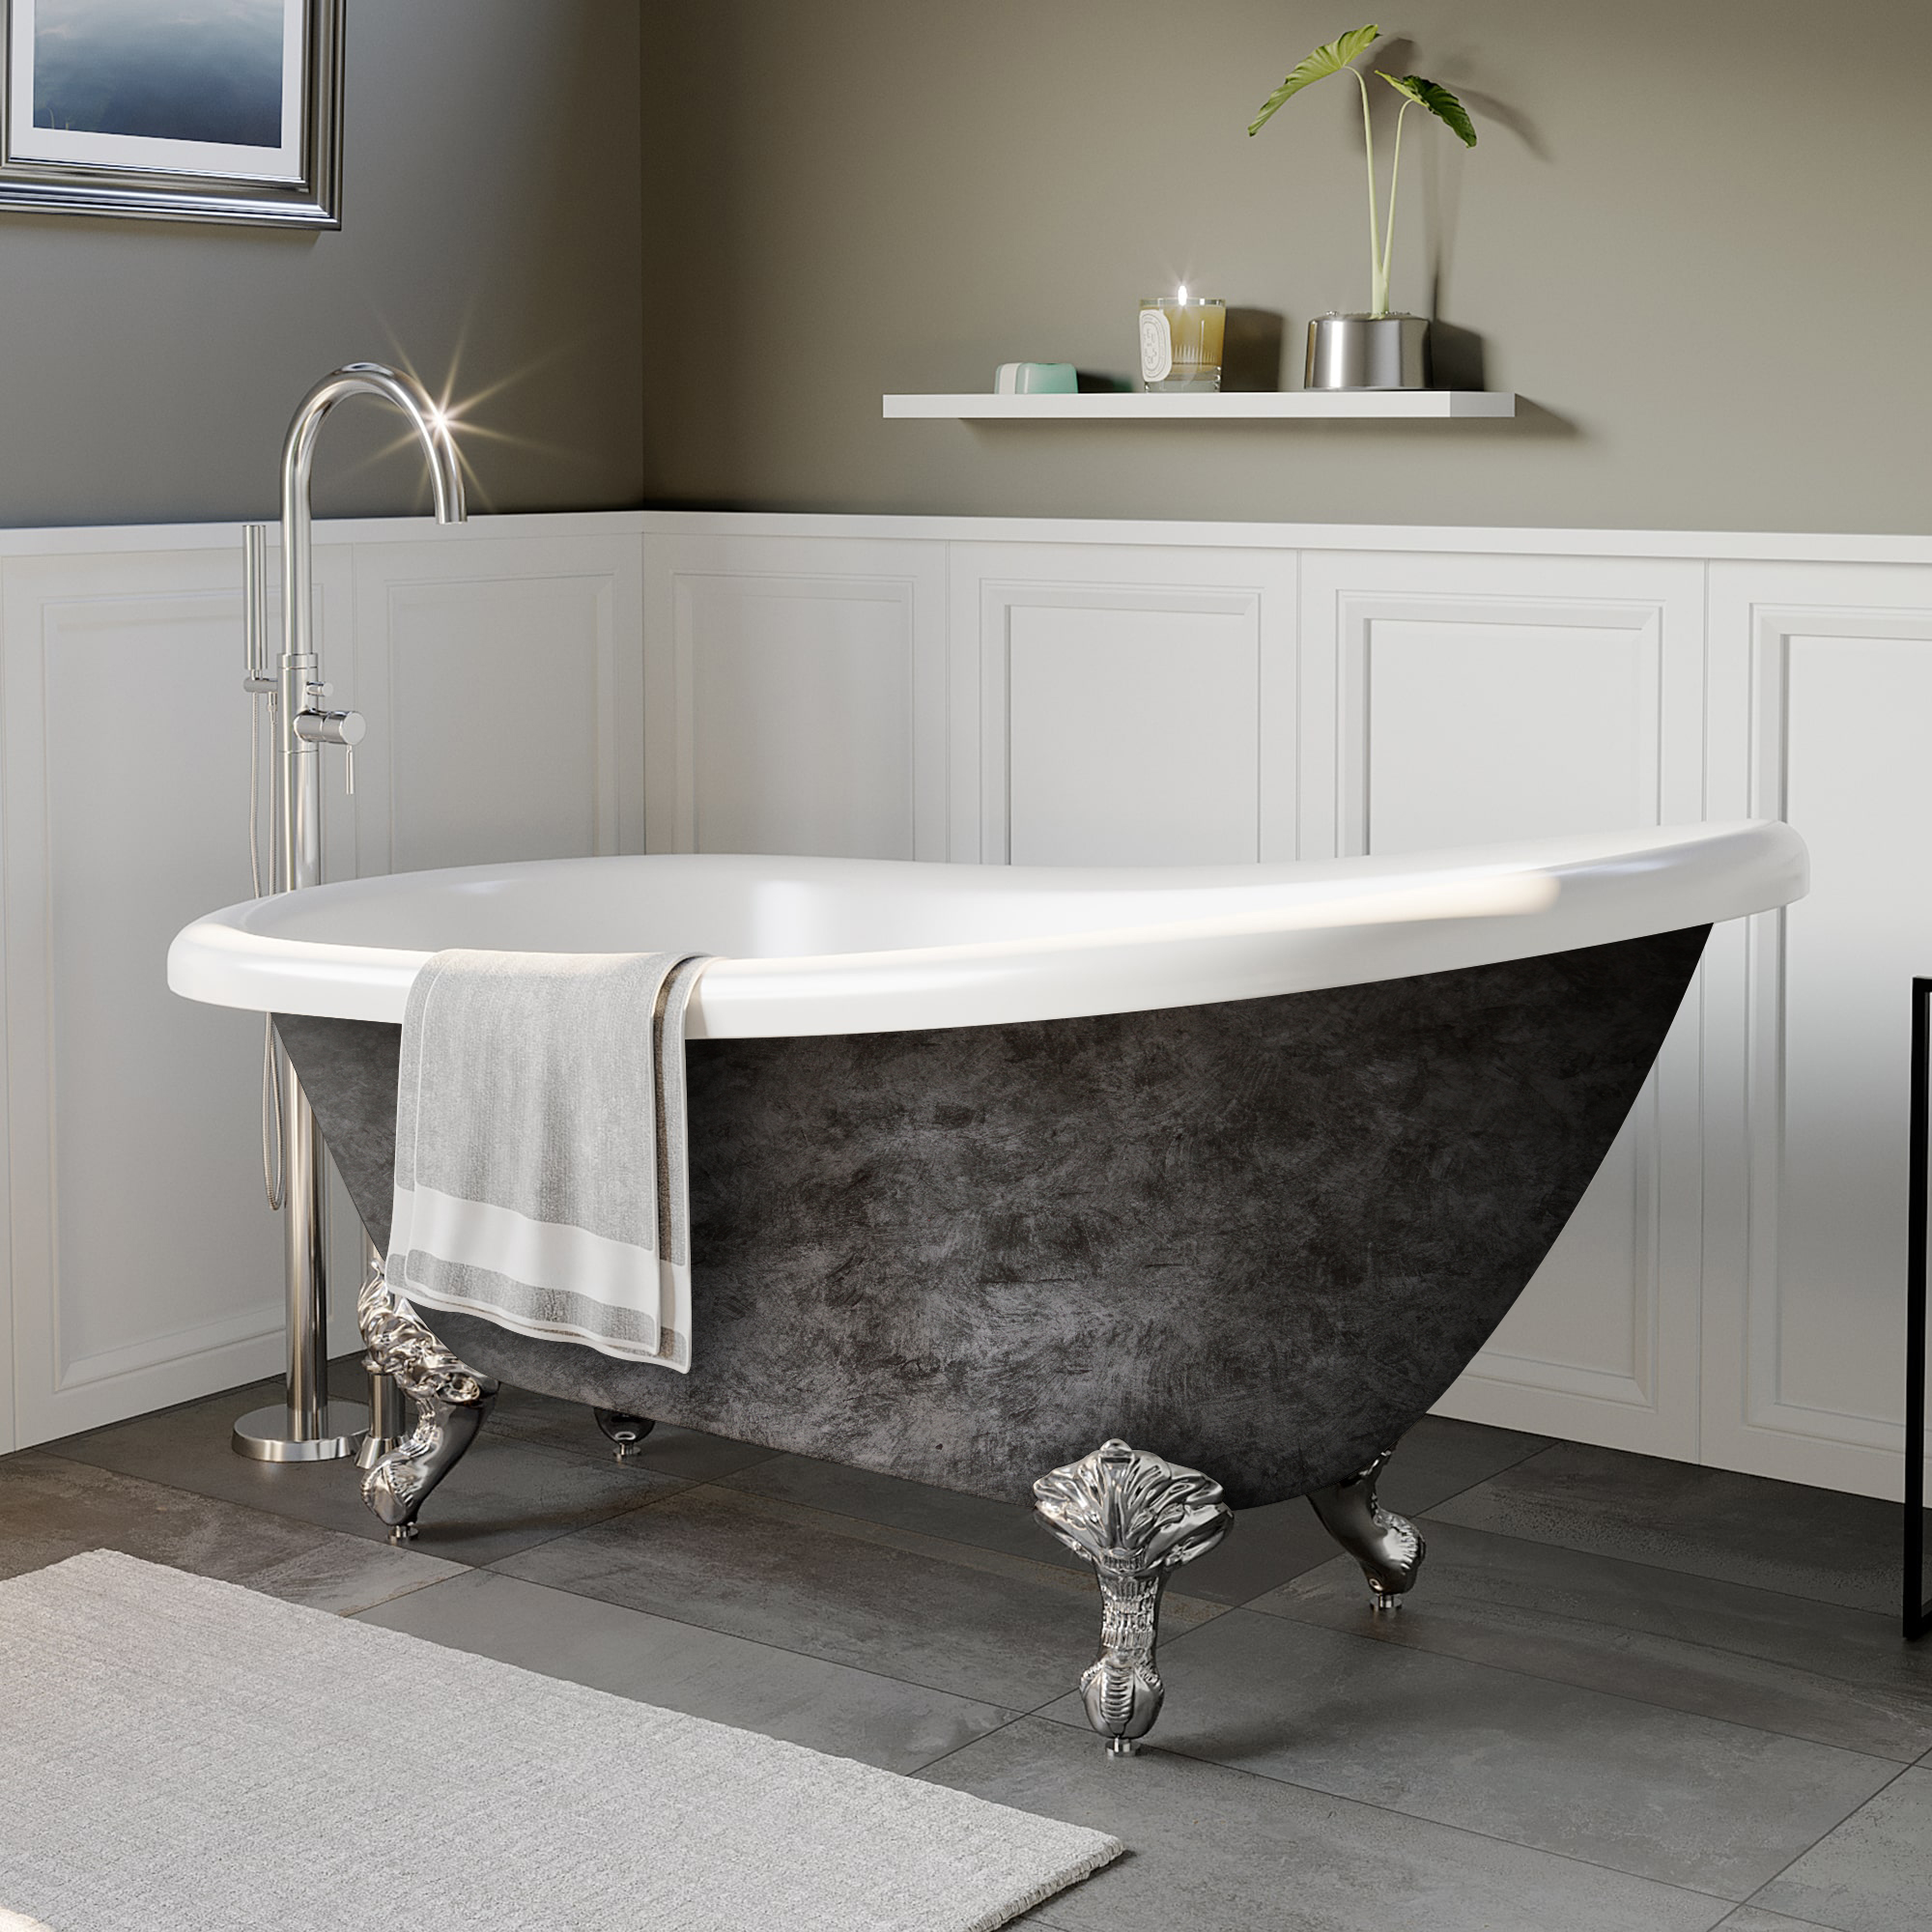 "Cambridge Scorched Platinum 61"" x 28"" Acrylic Slipper Bathtub with No Faucet Holes and Polished Chrome Ball and Claw Feet"